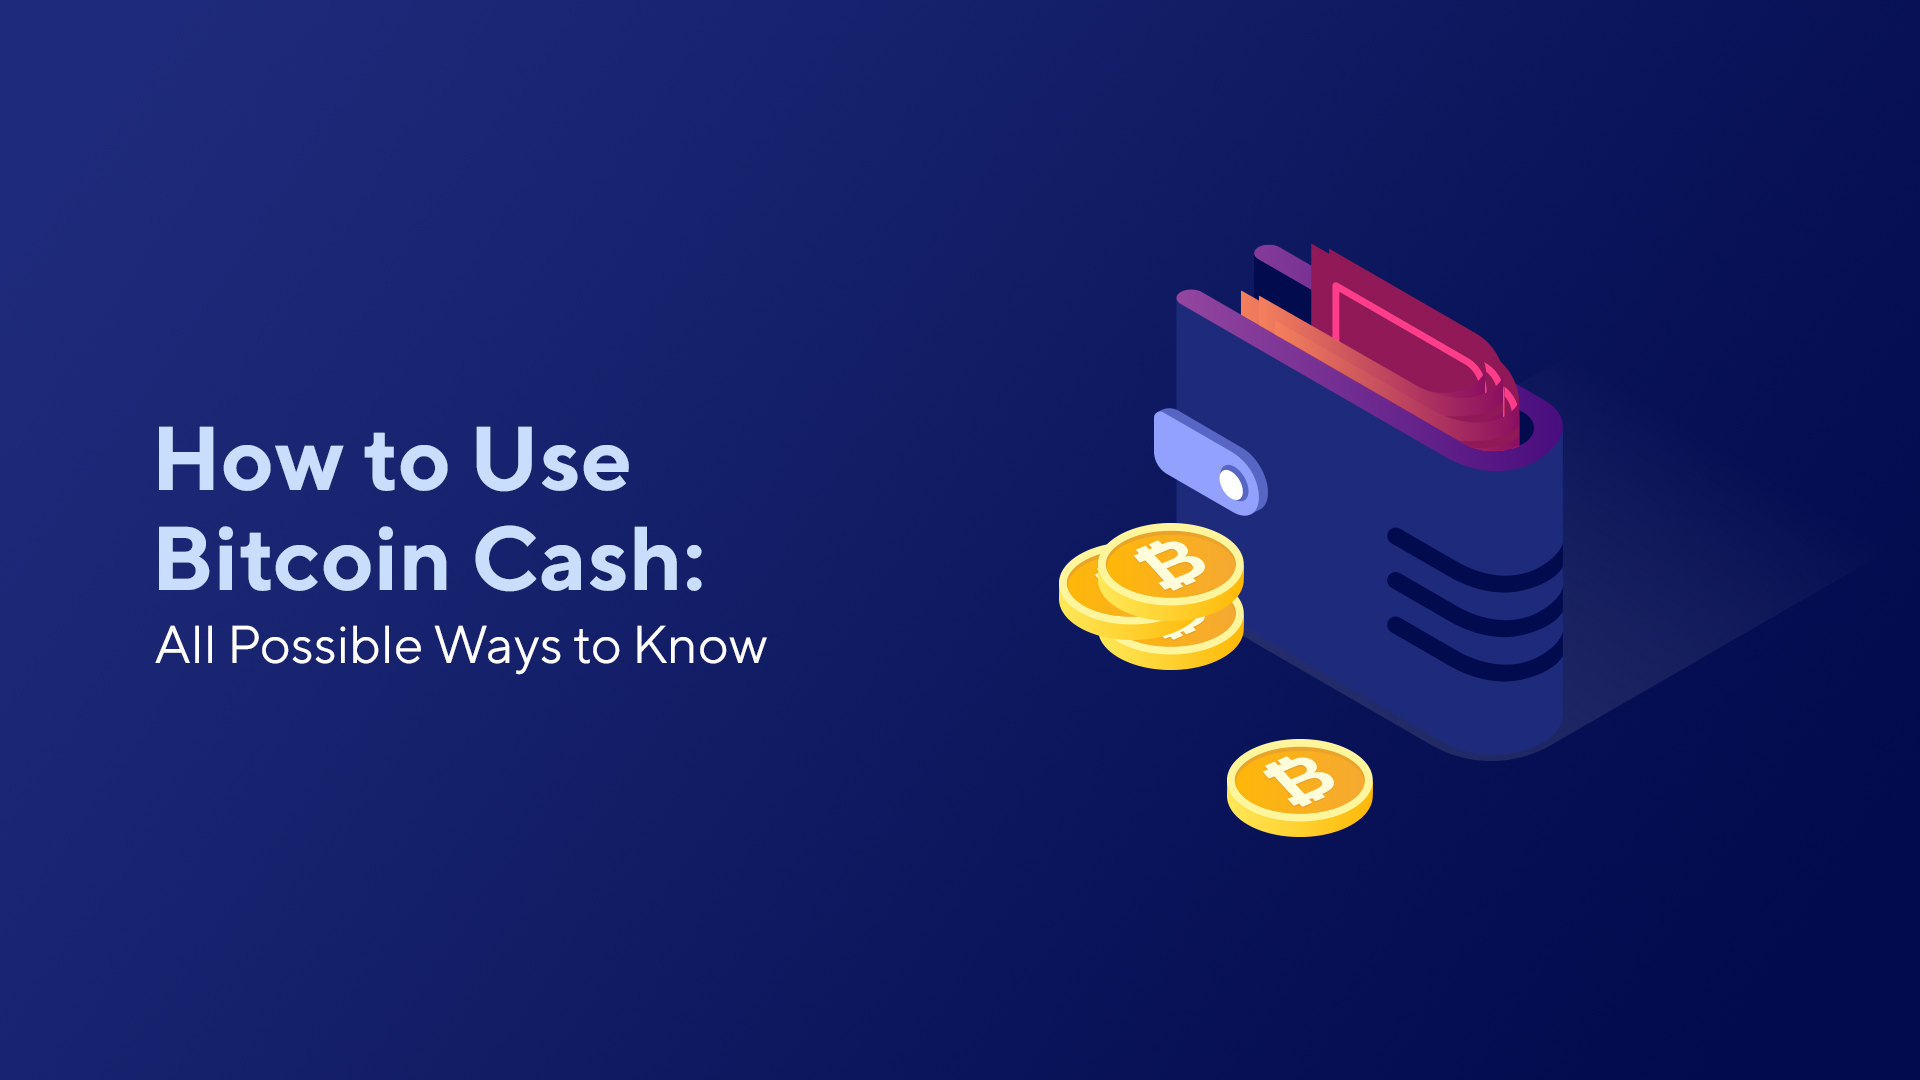 How to Use Bitcoin Cash: All Possible Ways to Know